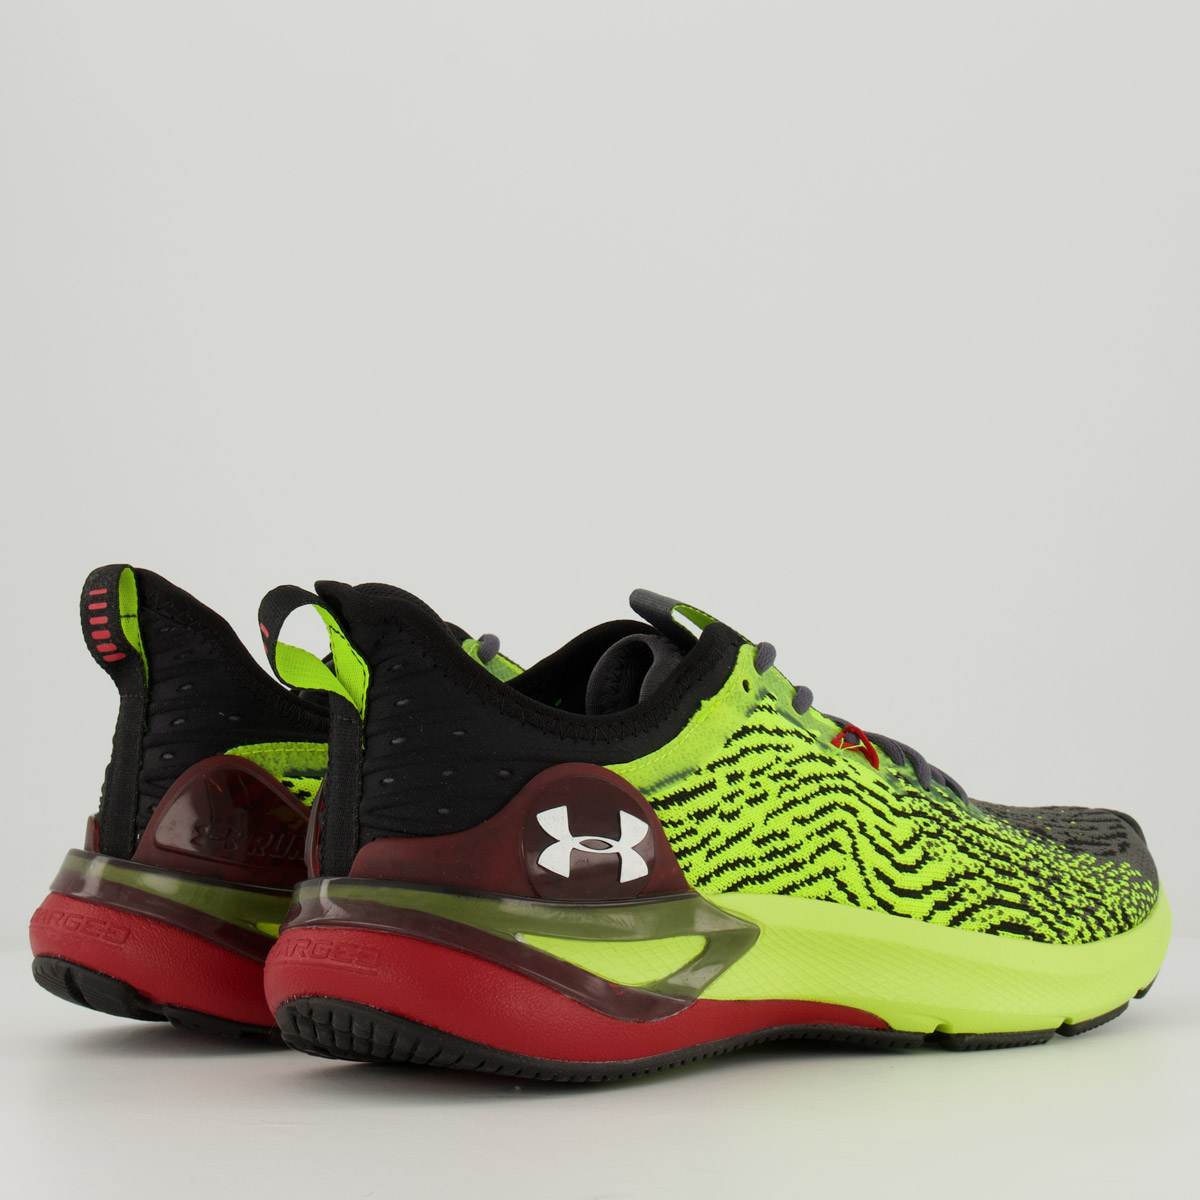 Tênis Under Armour Charged Stamina Masculino Amarelo